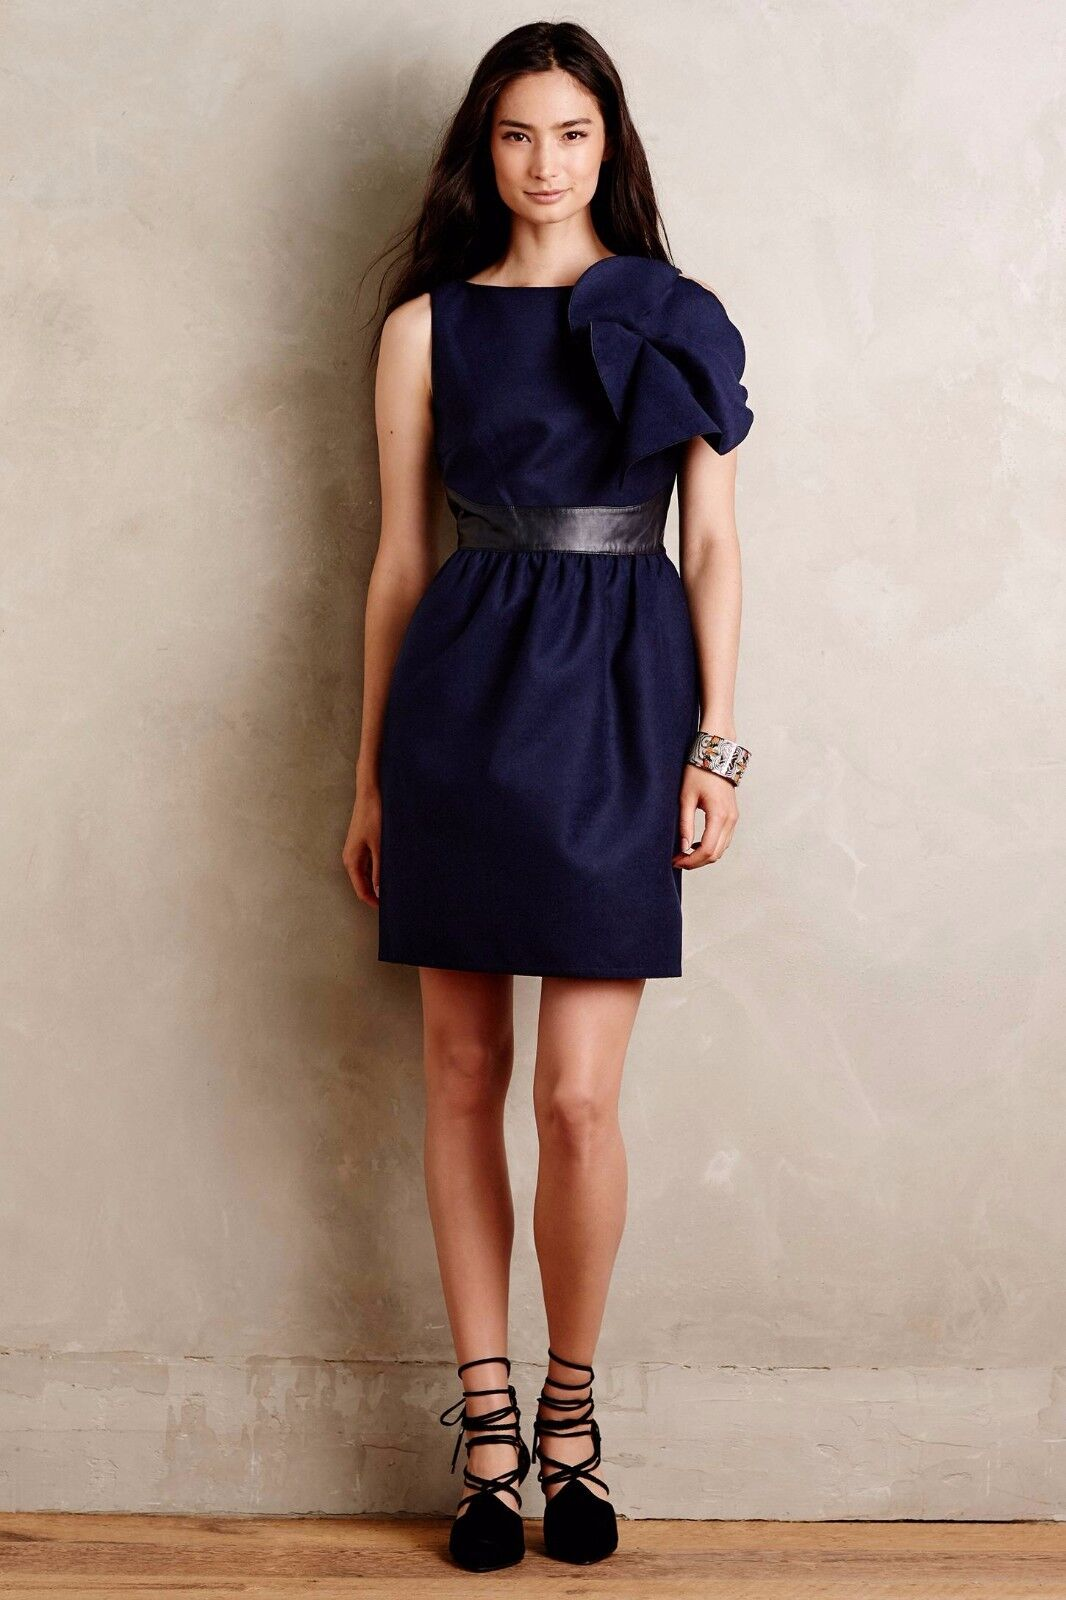 58d995f0688fc9 NWT ANTHROPOLOGIE MARIGNY CINCHED SHIFT DRESS by RAOUL 12 ...